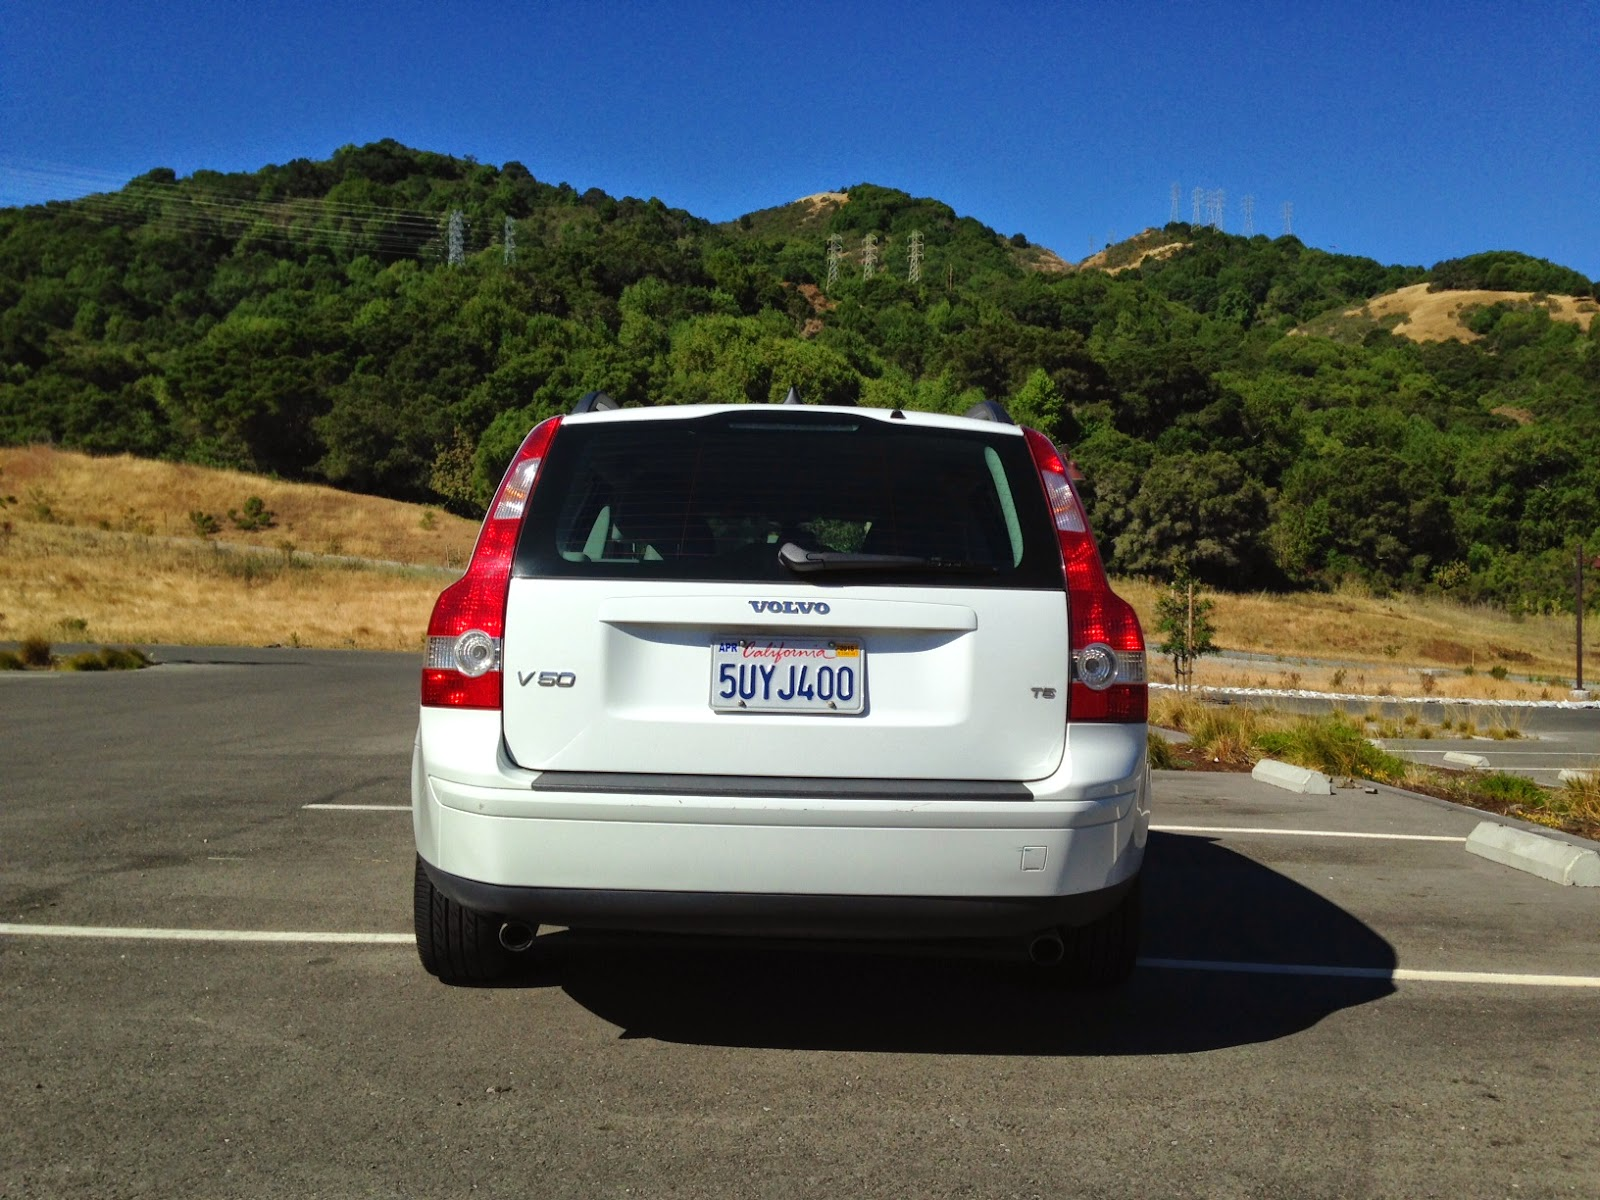 Tamerlane\'s Thoughts: My Volvo is for sale on Craigslist